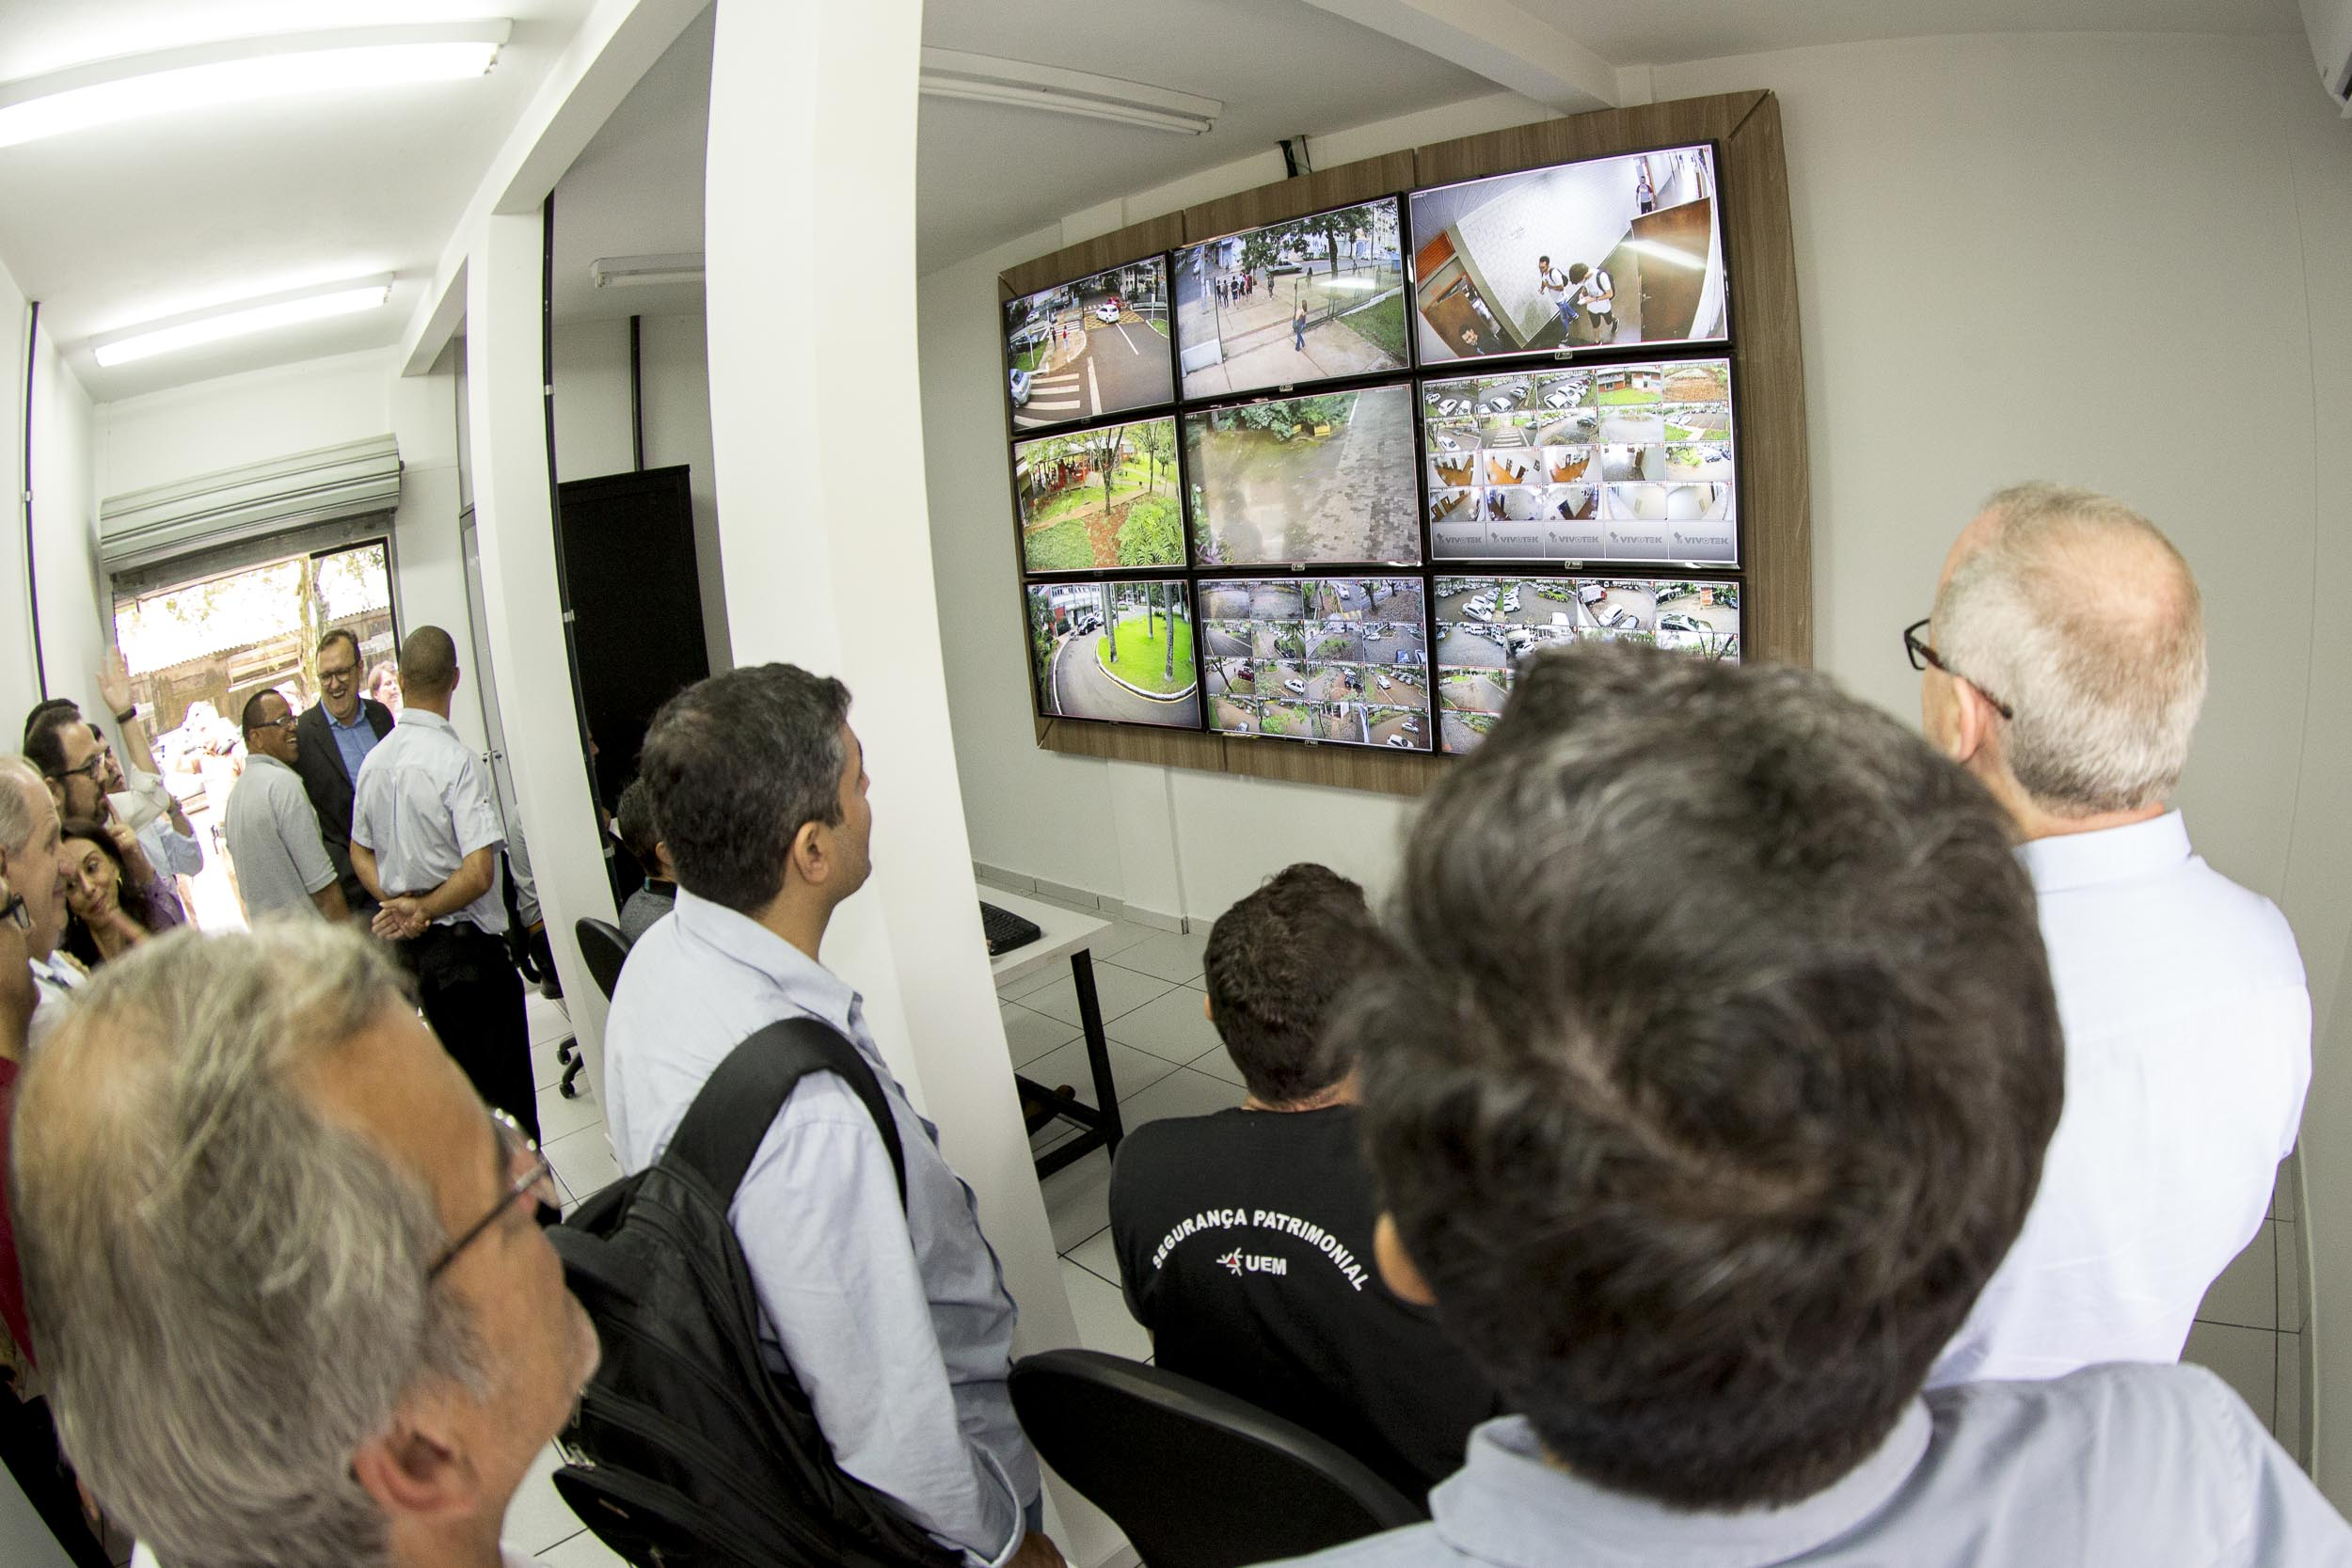 2018 10 09 Inauguracao da Central de Monitoramento MG 2314